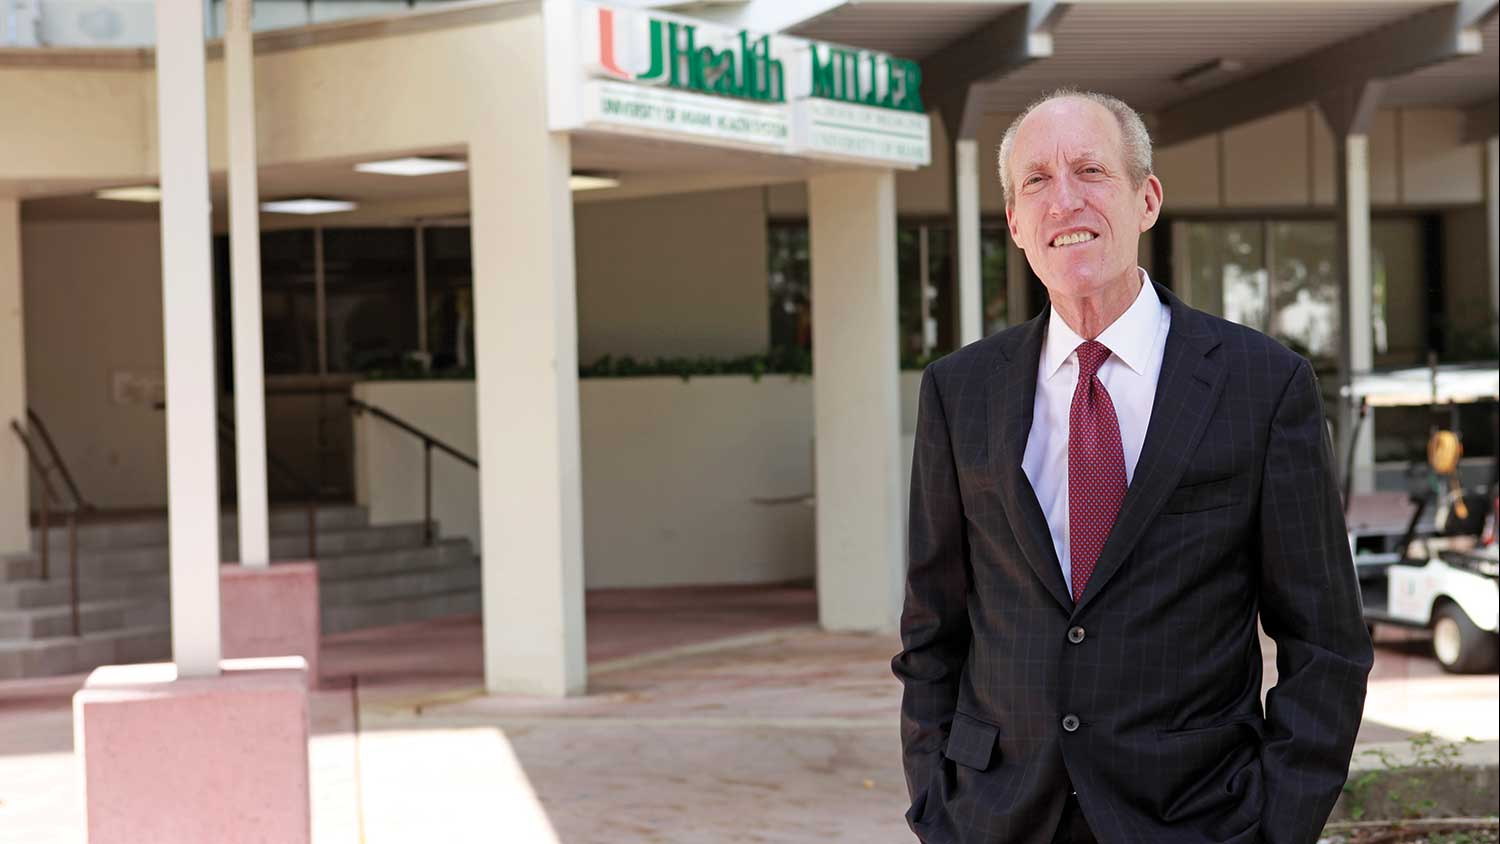 Edward Abraham: Heading University of Miami Miller School of Medicine